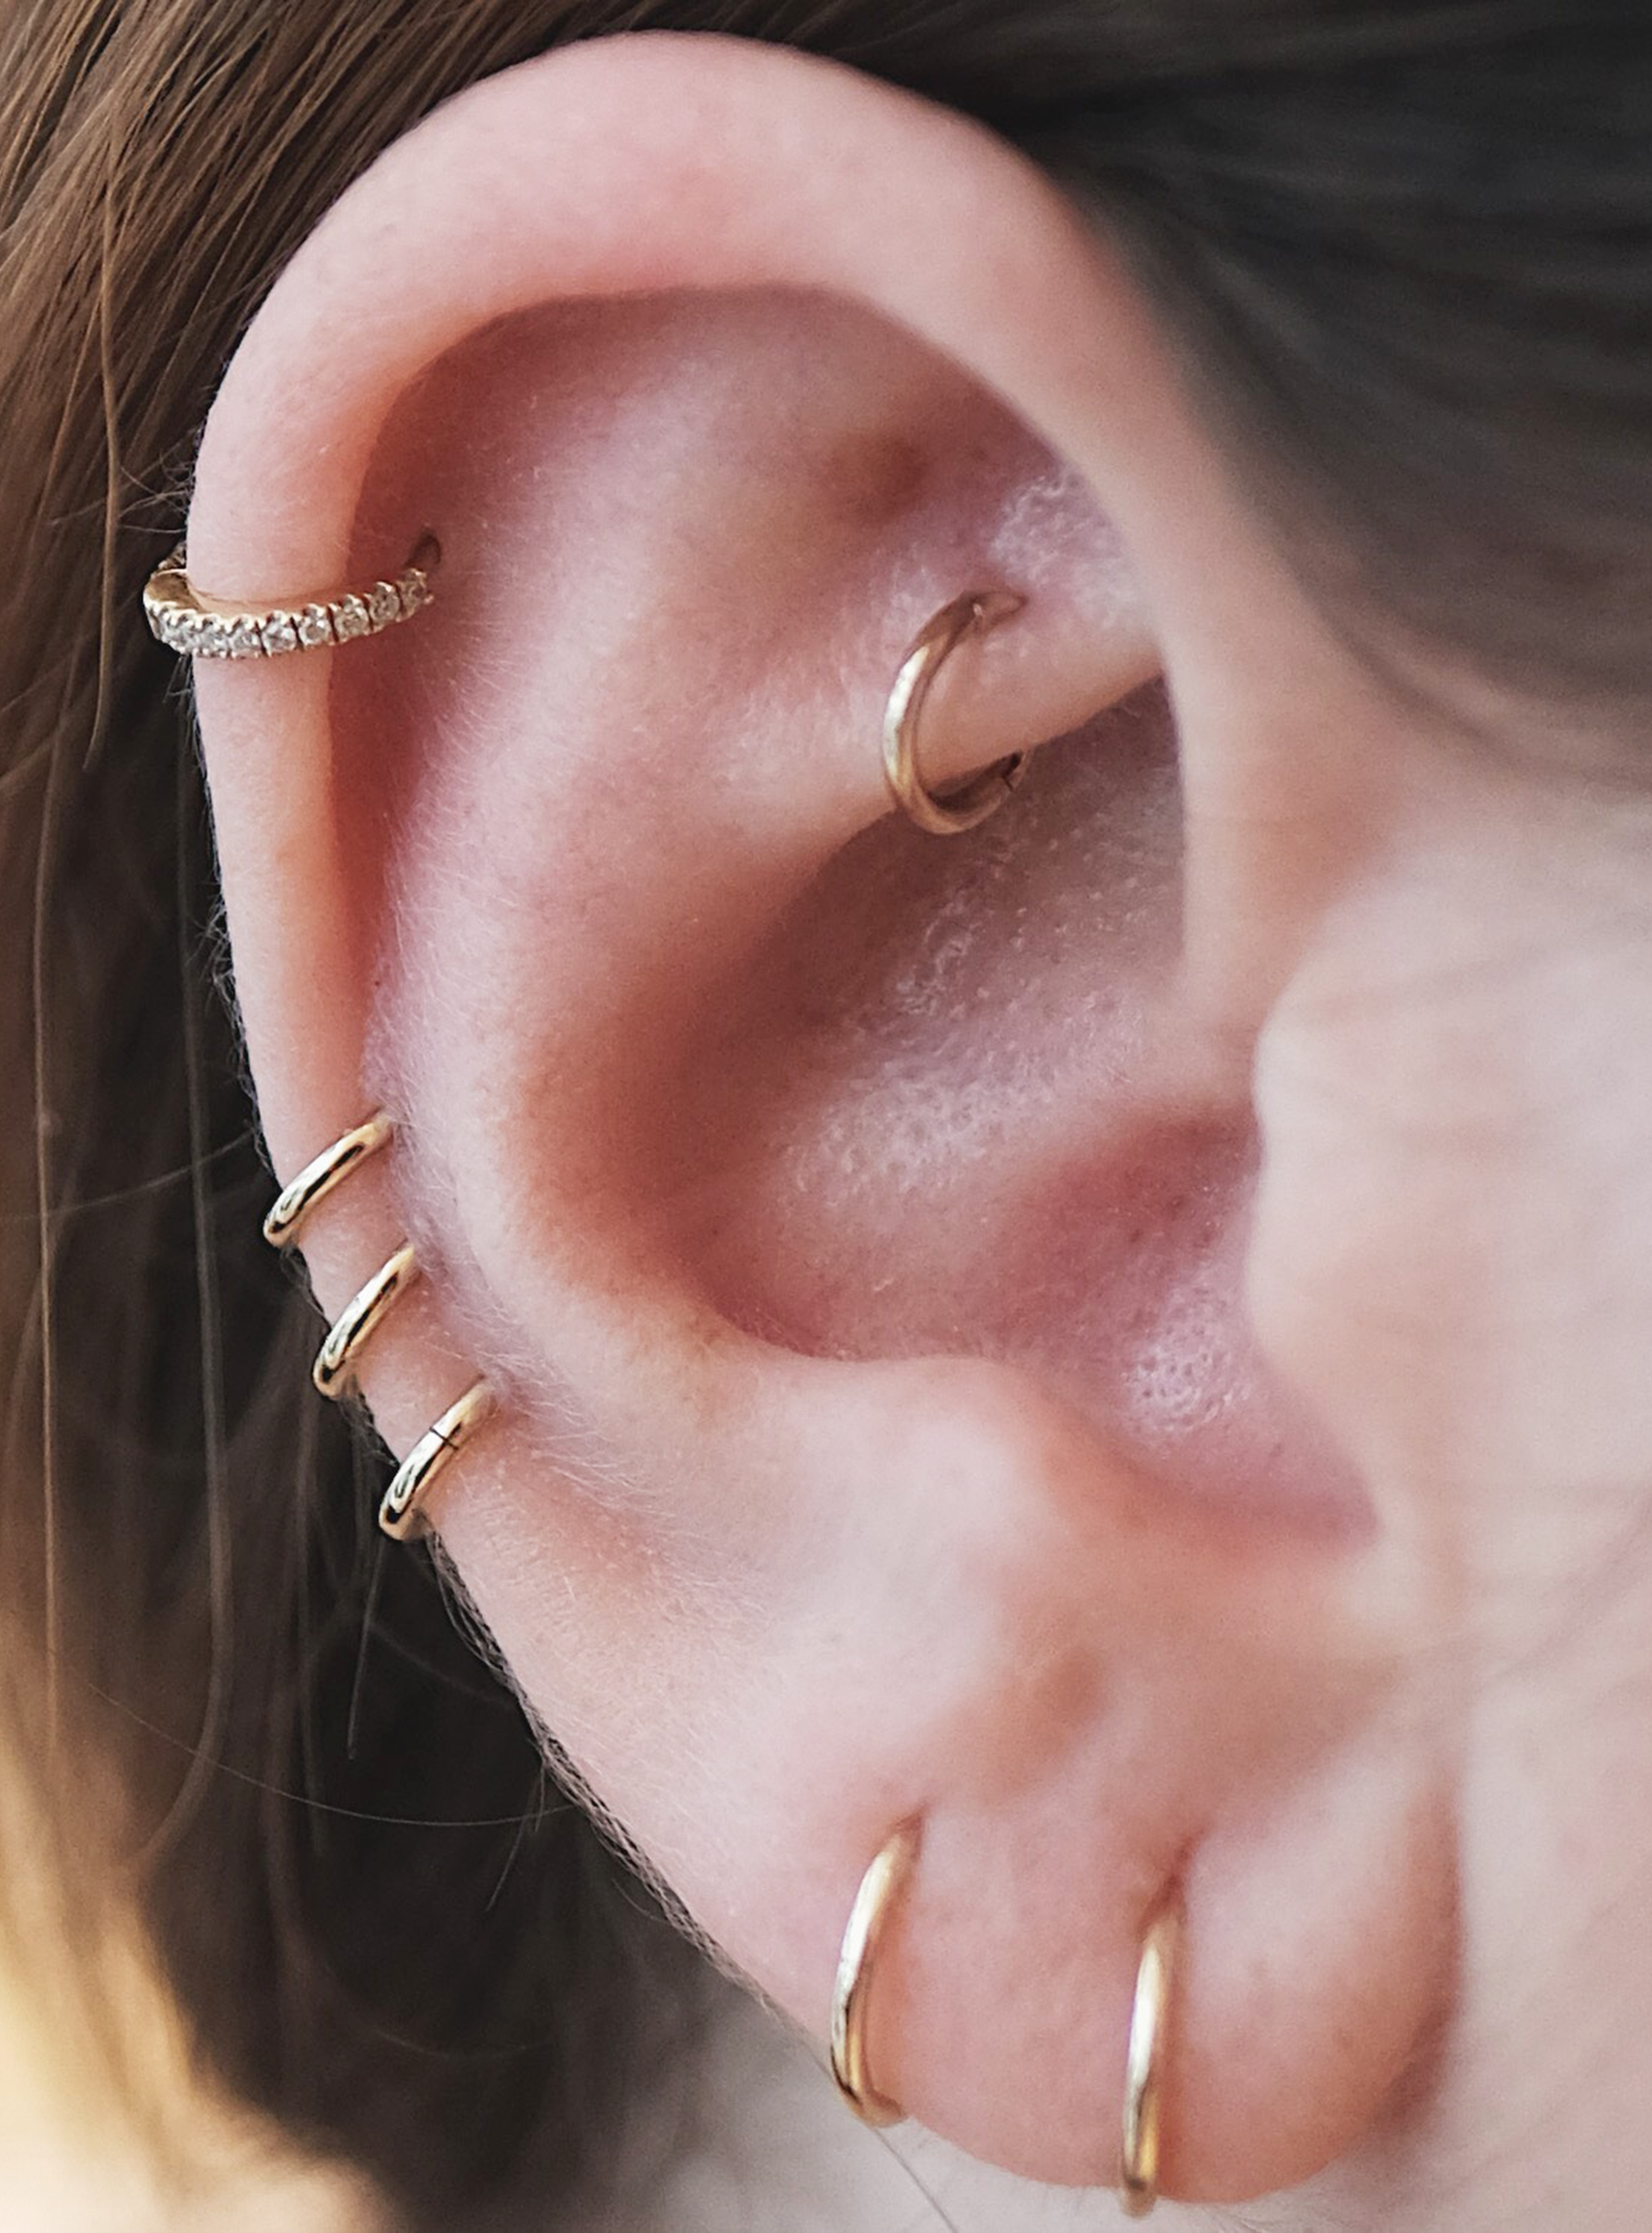 The Coolest Piercings New York Girls Are Getting Right Now ...